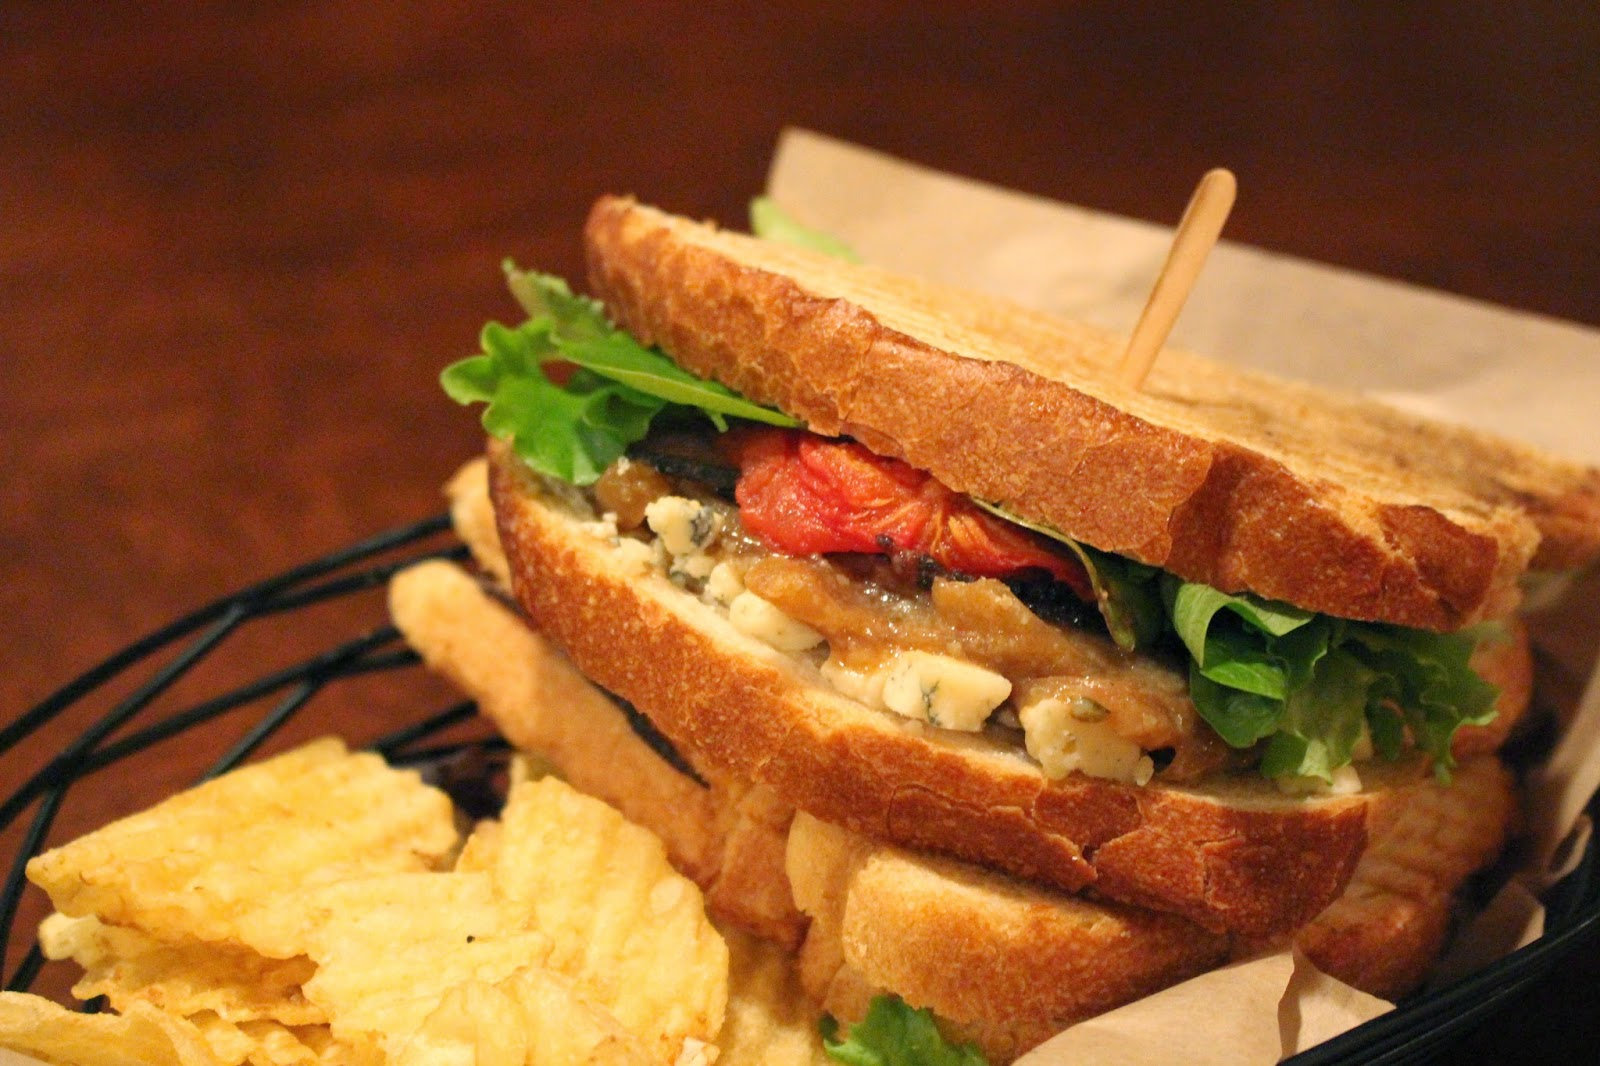 BACCHUS BAR & BISTRO OFFERS NEW LUNCH MENU AND HAPPY HOUR